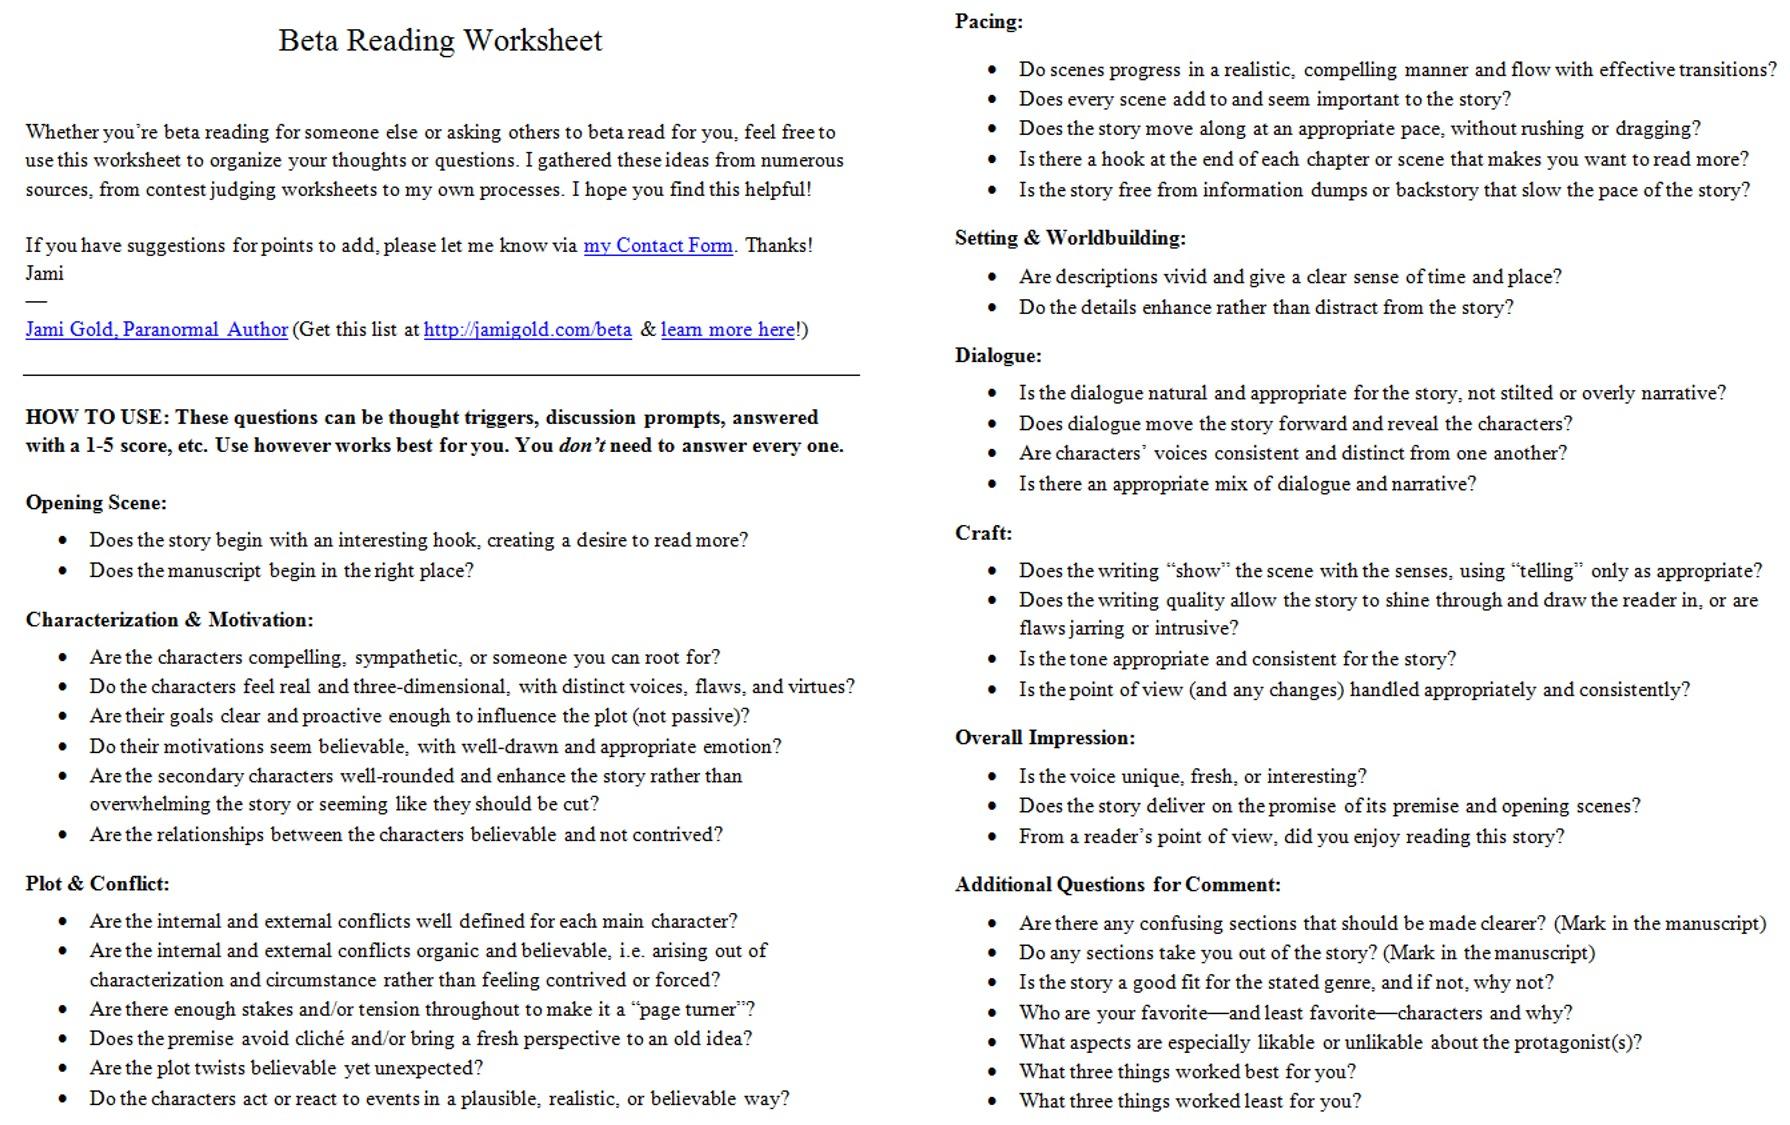 Aldiablosus  Splendid Worksheets For Writers  Jami Gold Paranormal Author With Great Screen Shot Of The Twopage Beta Reading Worksheet With Lovely Continents And Oceans Map Worksheet Also Botany Worksheets In Addition Circumference And Area Worksheets And Summarizing Worksheets For Middle School As Well As Negative Exponents Worksheet Printable Additionally Geometry Formulas Worksheet From Jamigoldcom With Aldiablosus  Great Worksheets For Writers  Jami Gold Paranormal Author With Lovely Screen Shot Of The Twopage Beta Reading Worksheet And Splendid Continents And Oceans Map Worksheet Also Botany Worksheets In Addition Circumference And Area Worksheets From Jamigoldcom